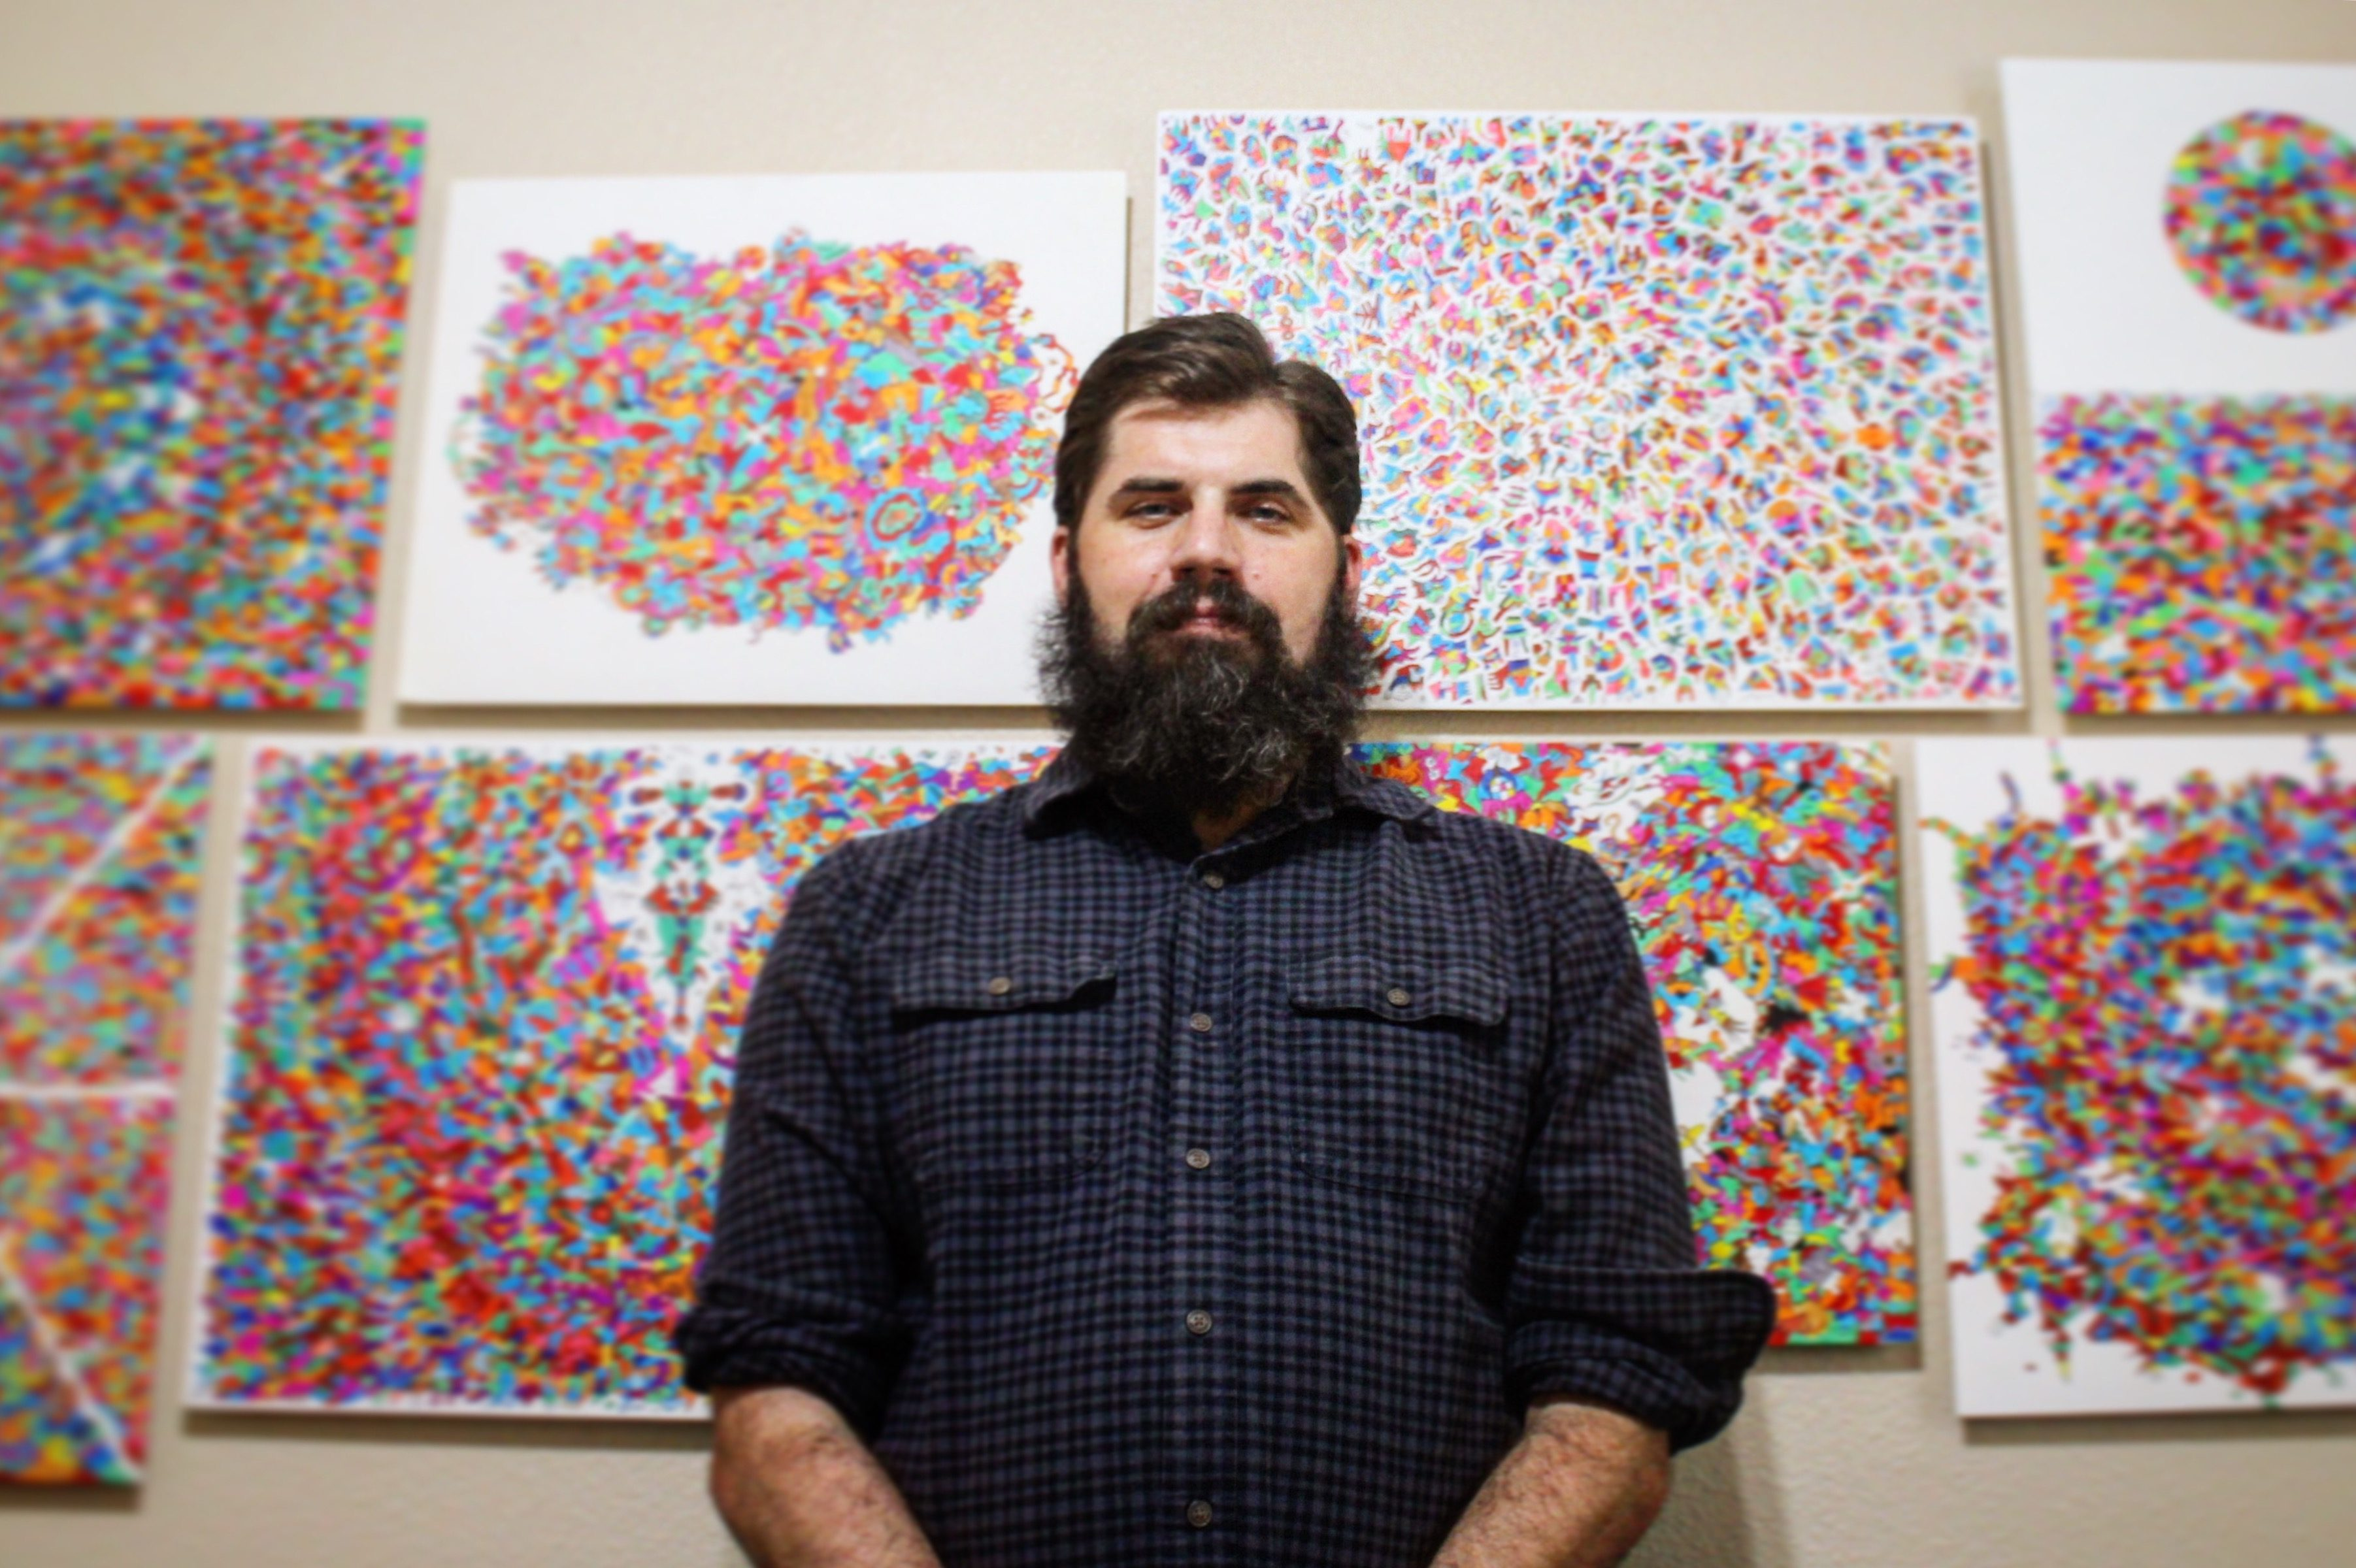 Cancerwise blog post: Brain tumor survivor uses art to cope with brain tumor treatment